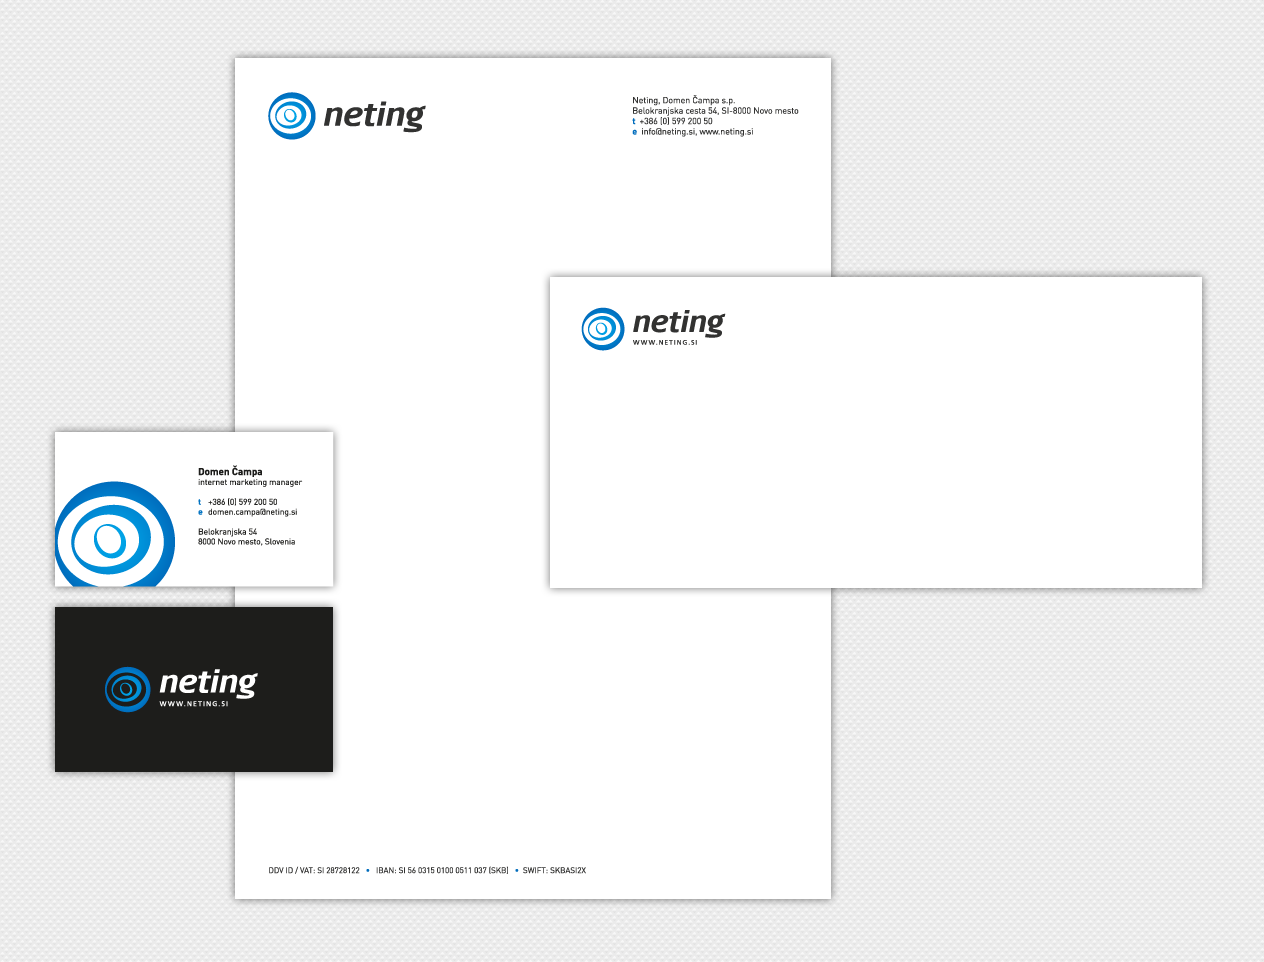 Neting Visual Identity & Stationery